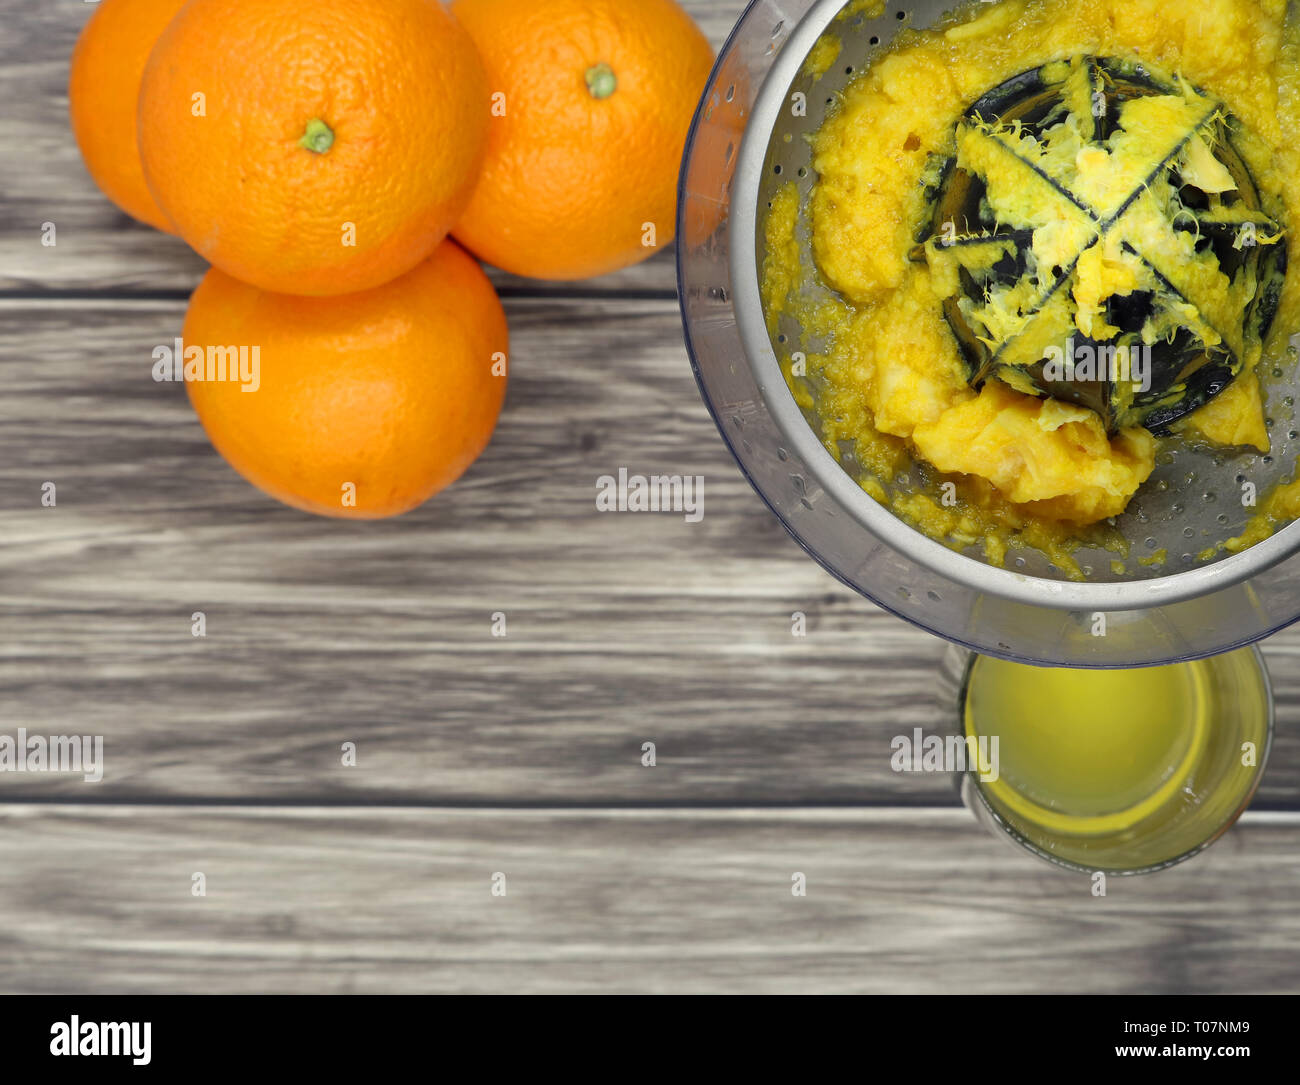 top view of oranges, a juicer and a glass of juice on wooden background, copy space - Stock Image